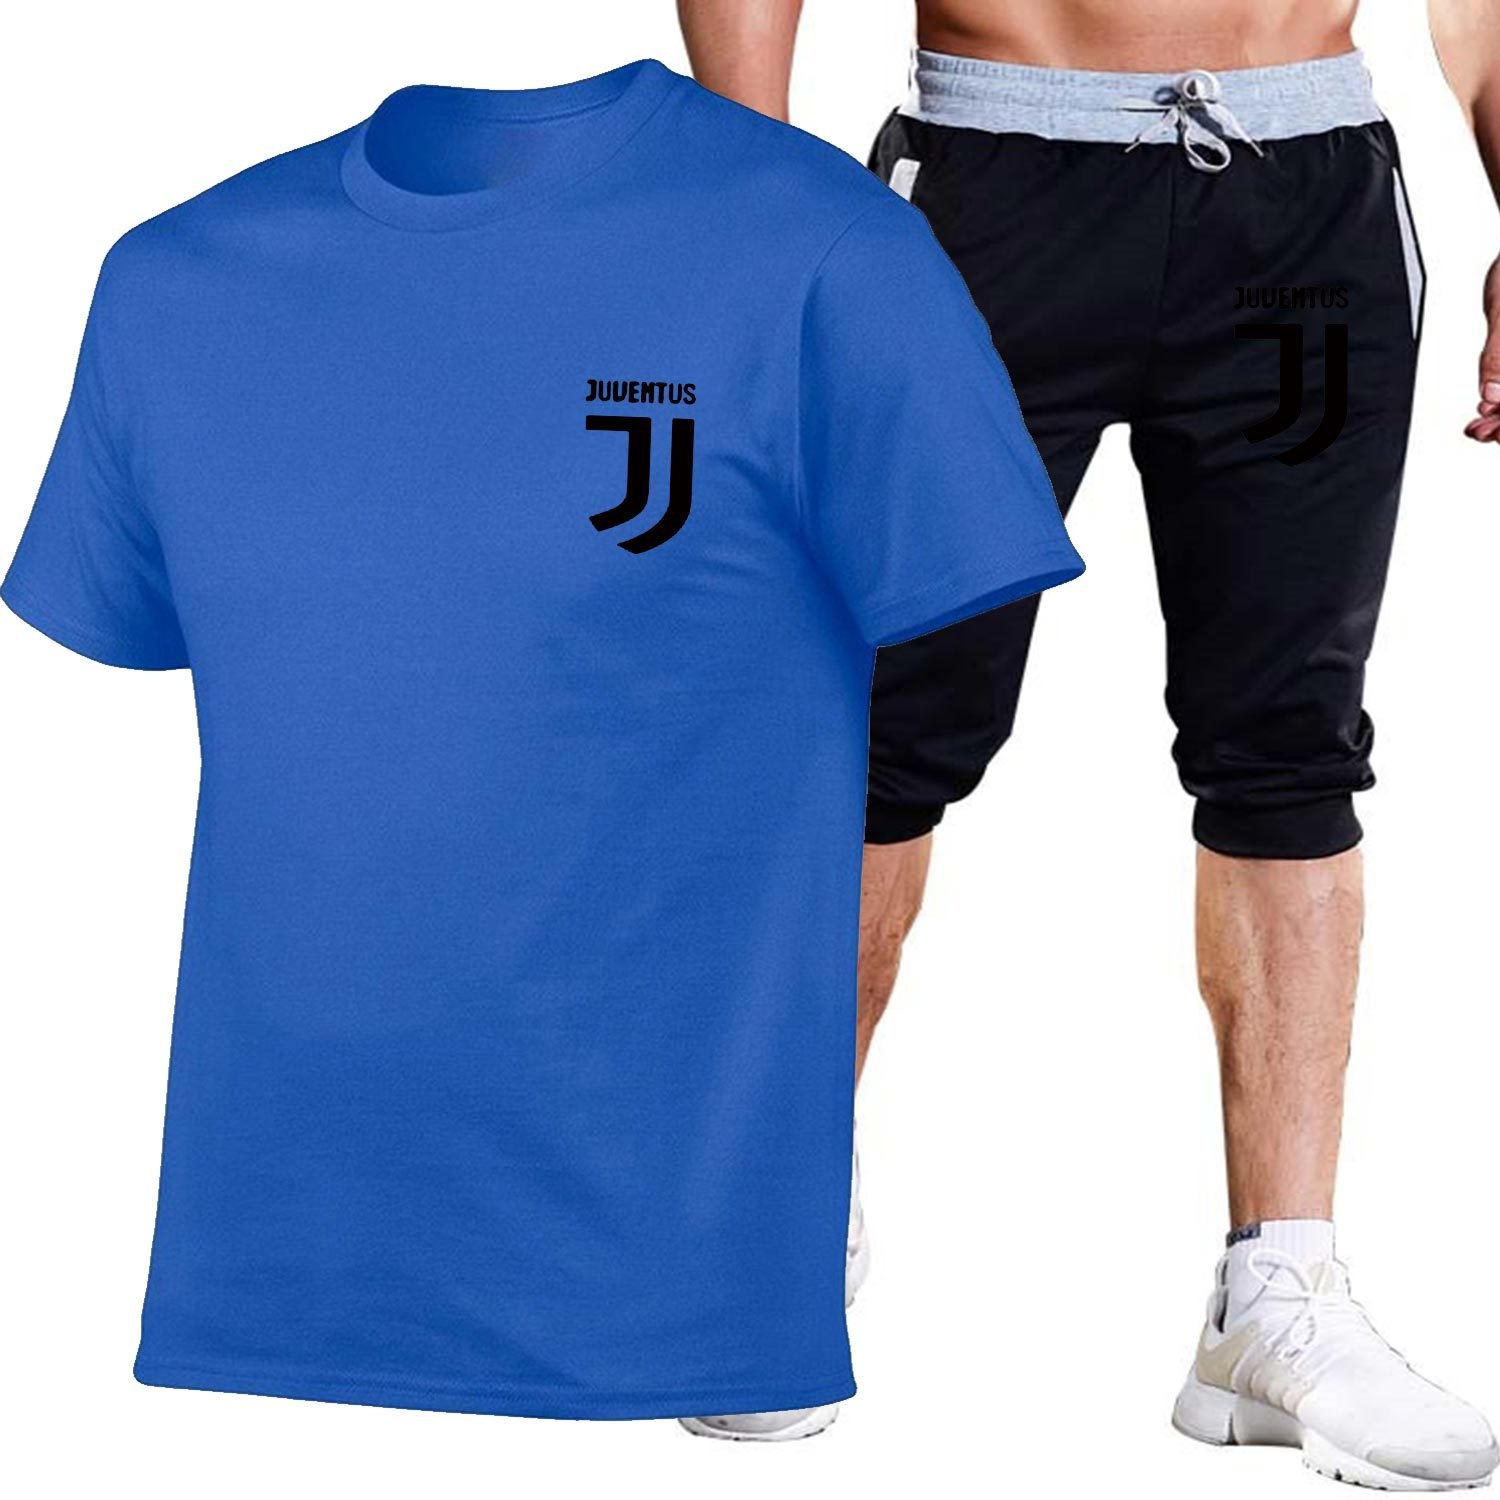 Summer Men And Women Printed Cotton Short-sleeved T-shirt + Capri Shorts Leisure Sports Suit